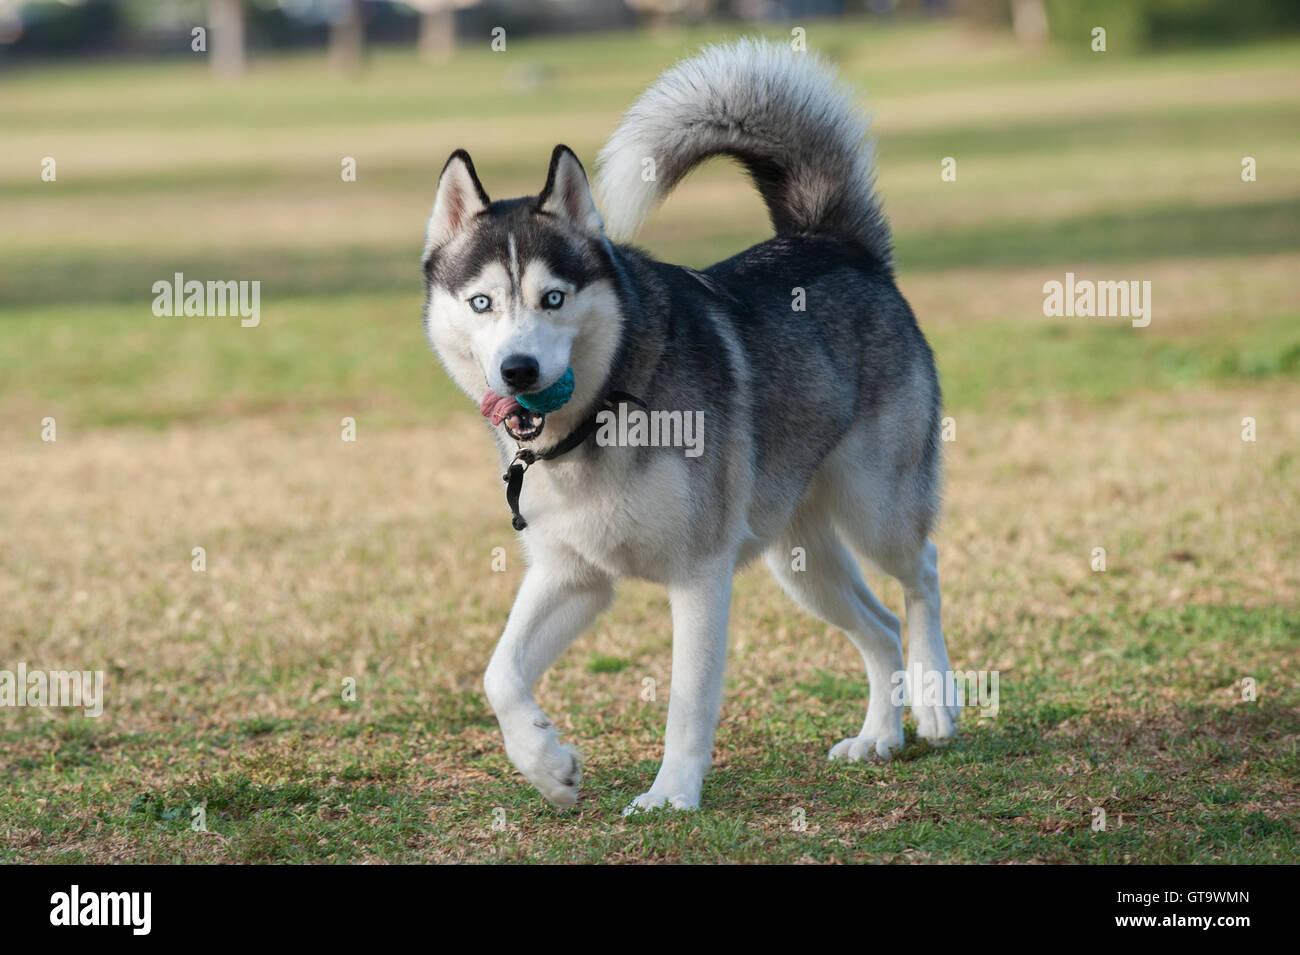 Black and white Siberian Husky dog walking in grass at park while looking right. - Stock Image